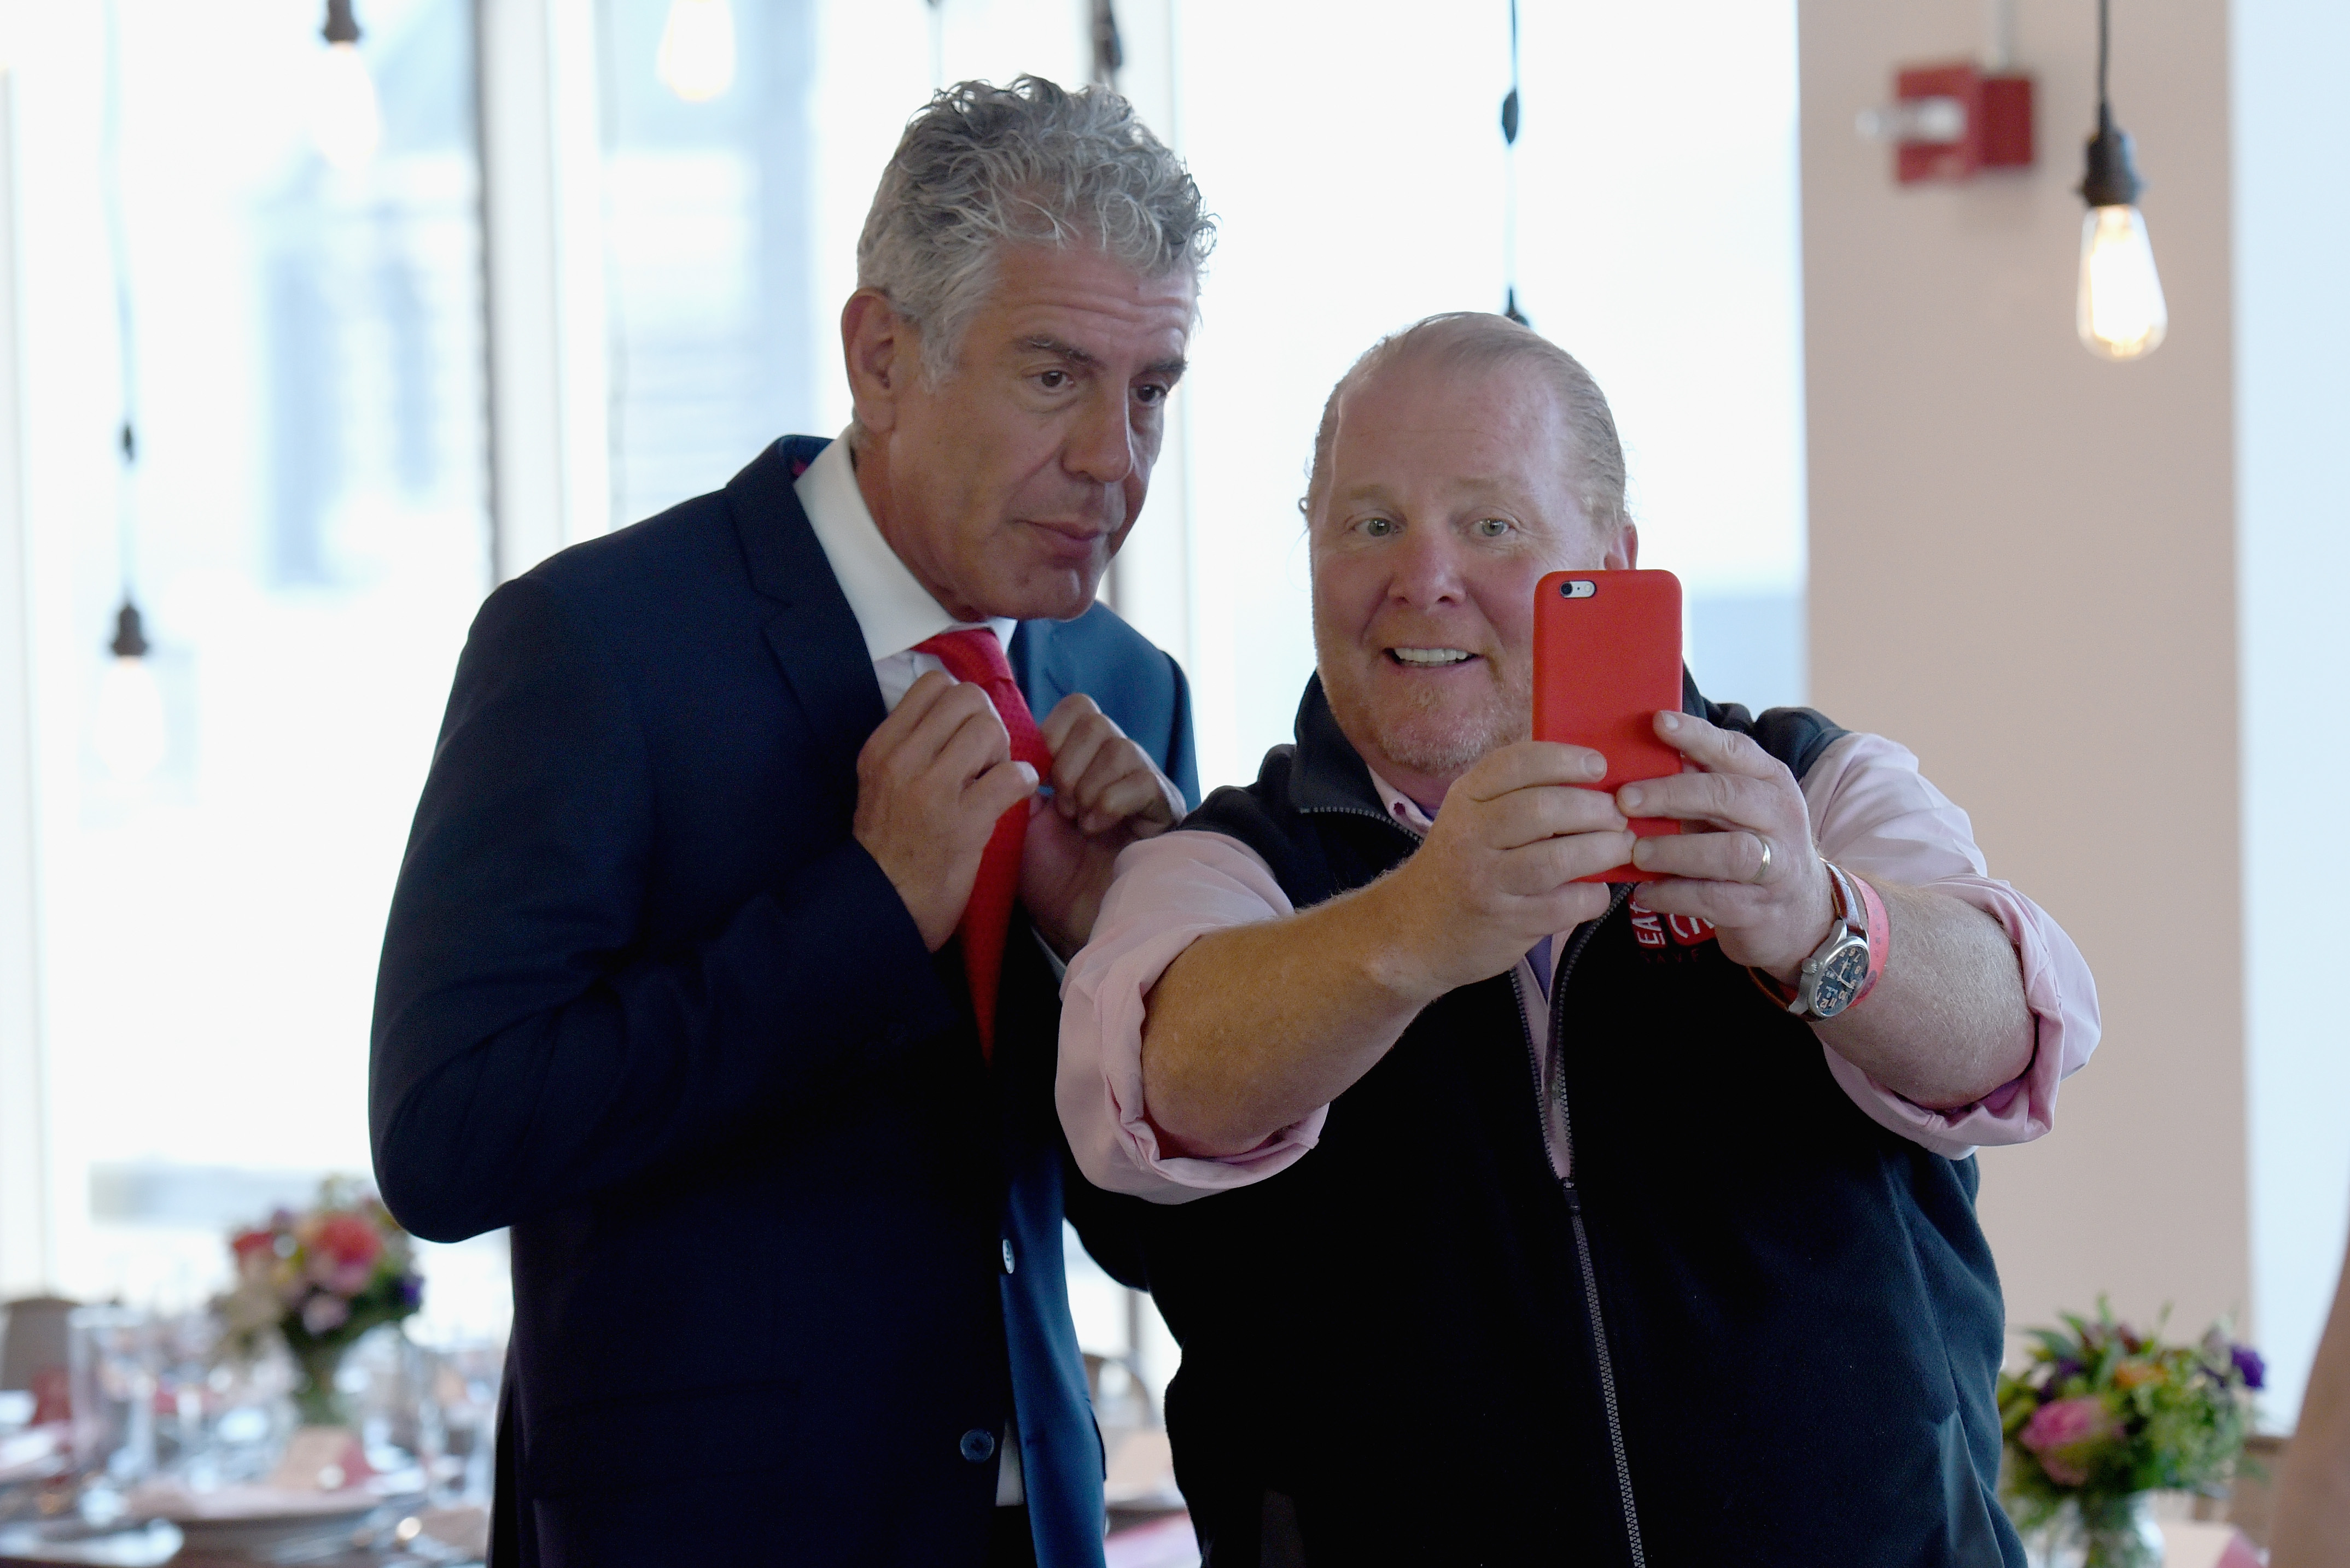 Anthony Bourdain and Mario Batali